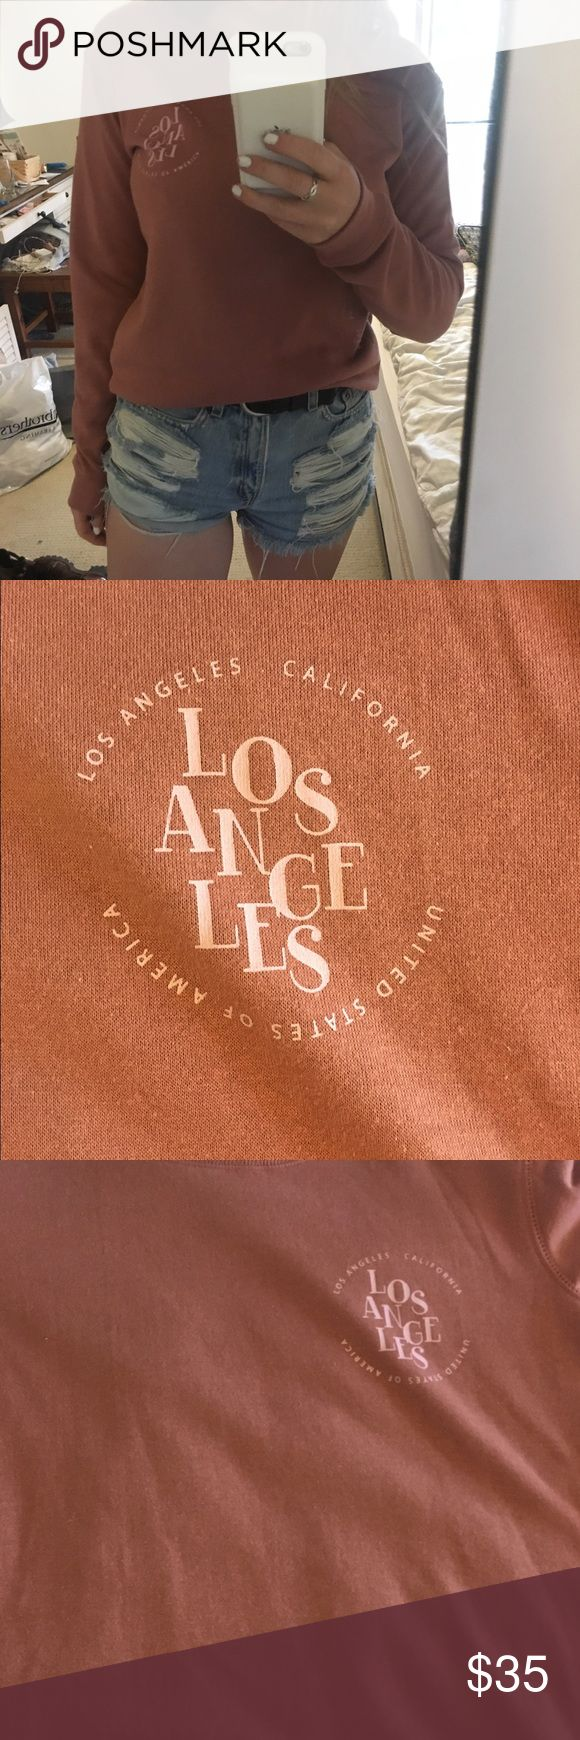 Baby pink Los Angeles Pull over sweater Super soft. Never been worn. Brandy Melville Los Angeles California Sweater. Perfect for cozy summer nights !! Brandy Melville Sweaters Crew & Scoop Necks